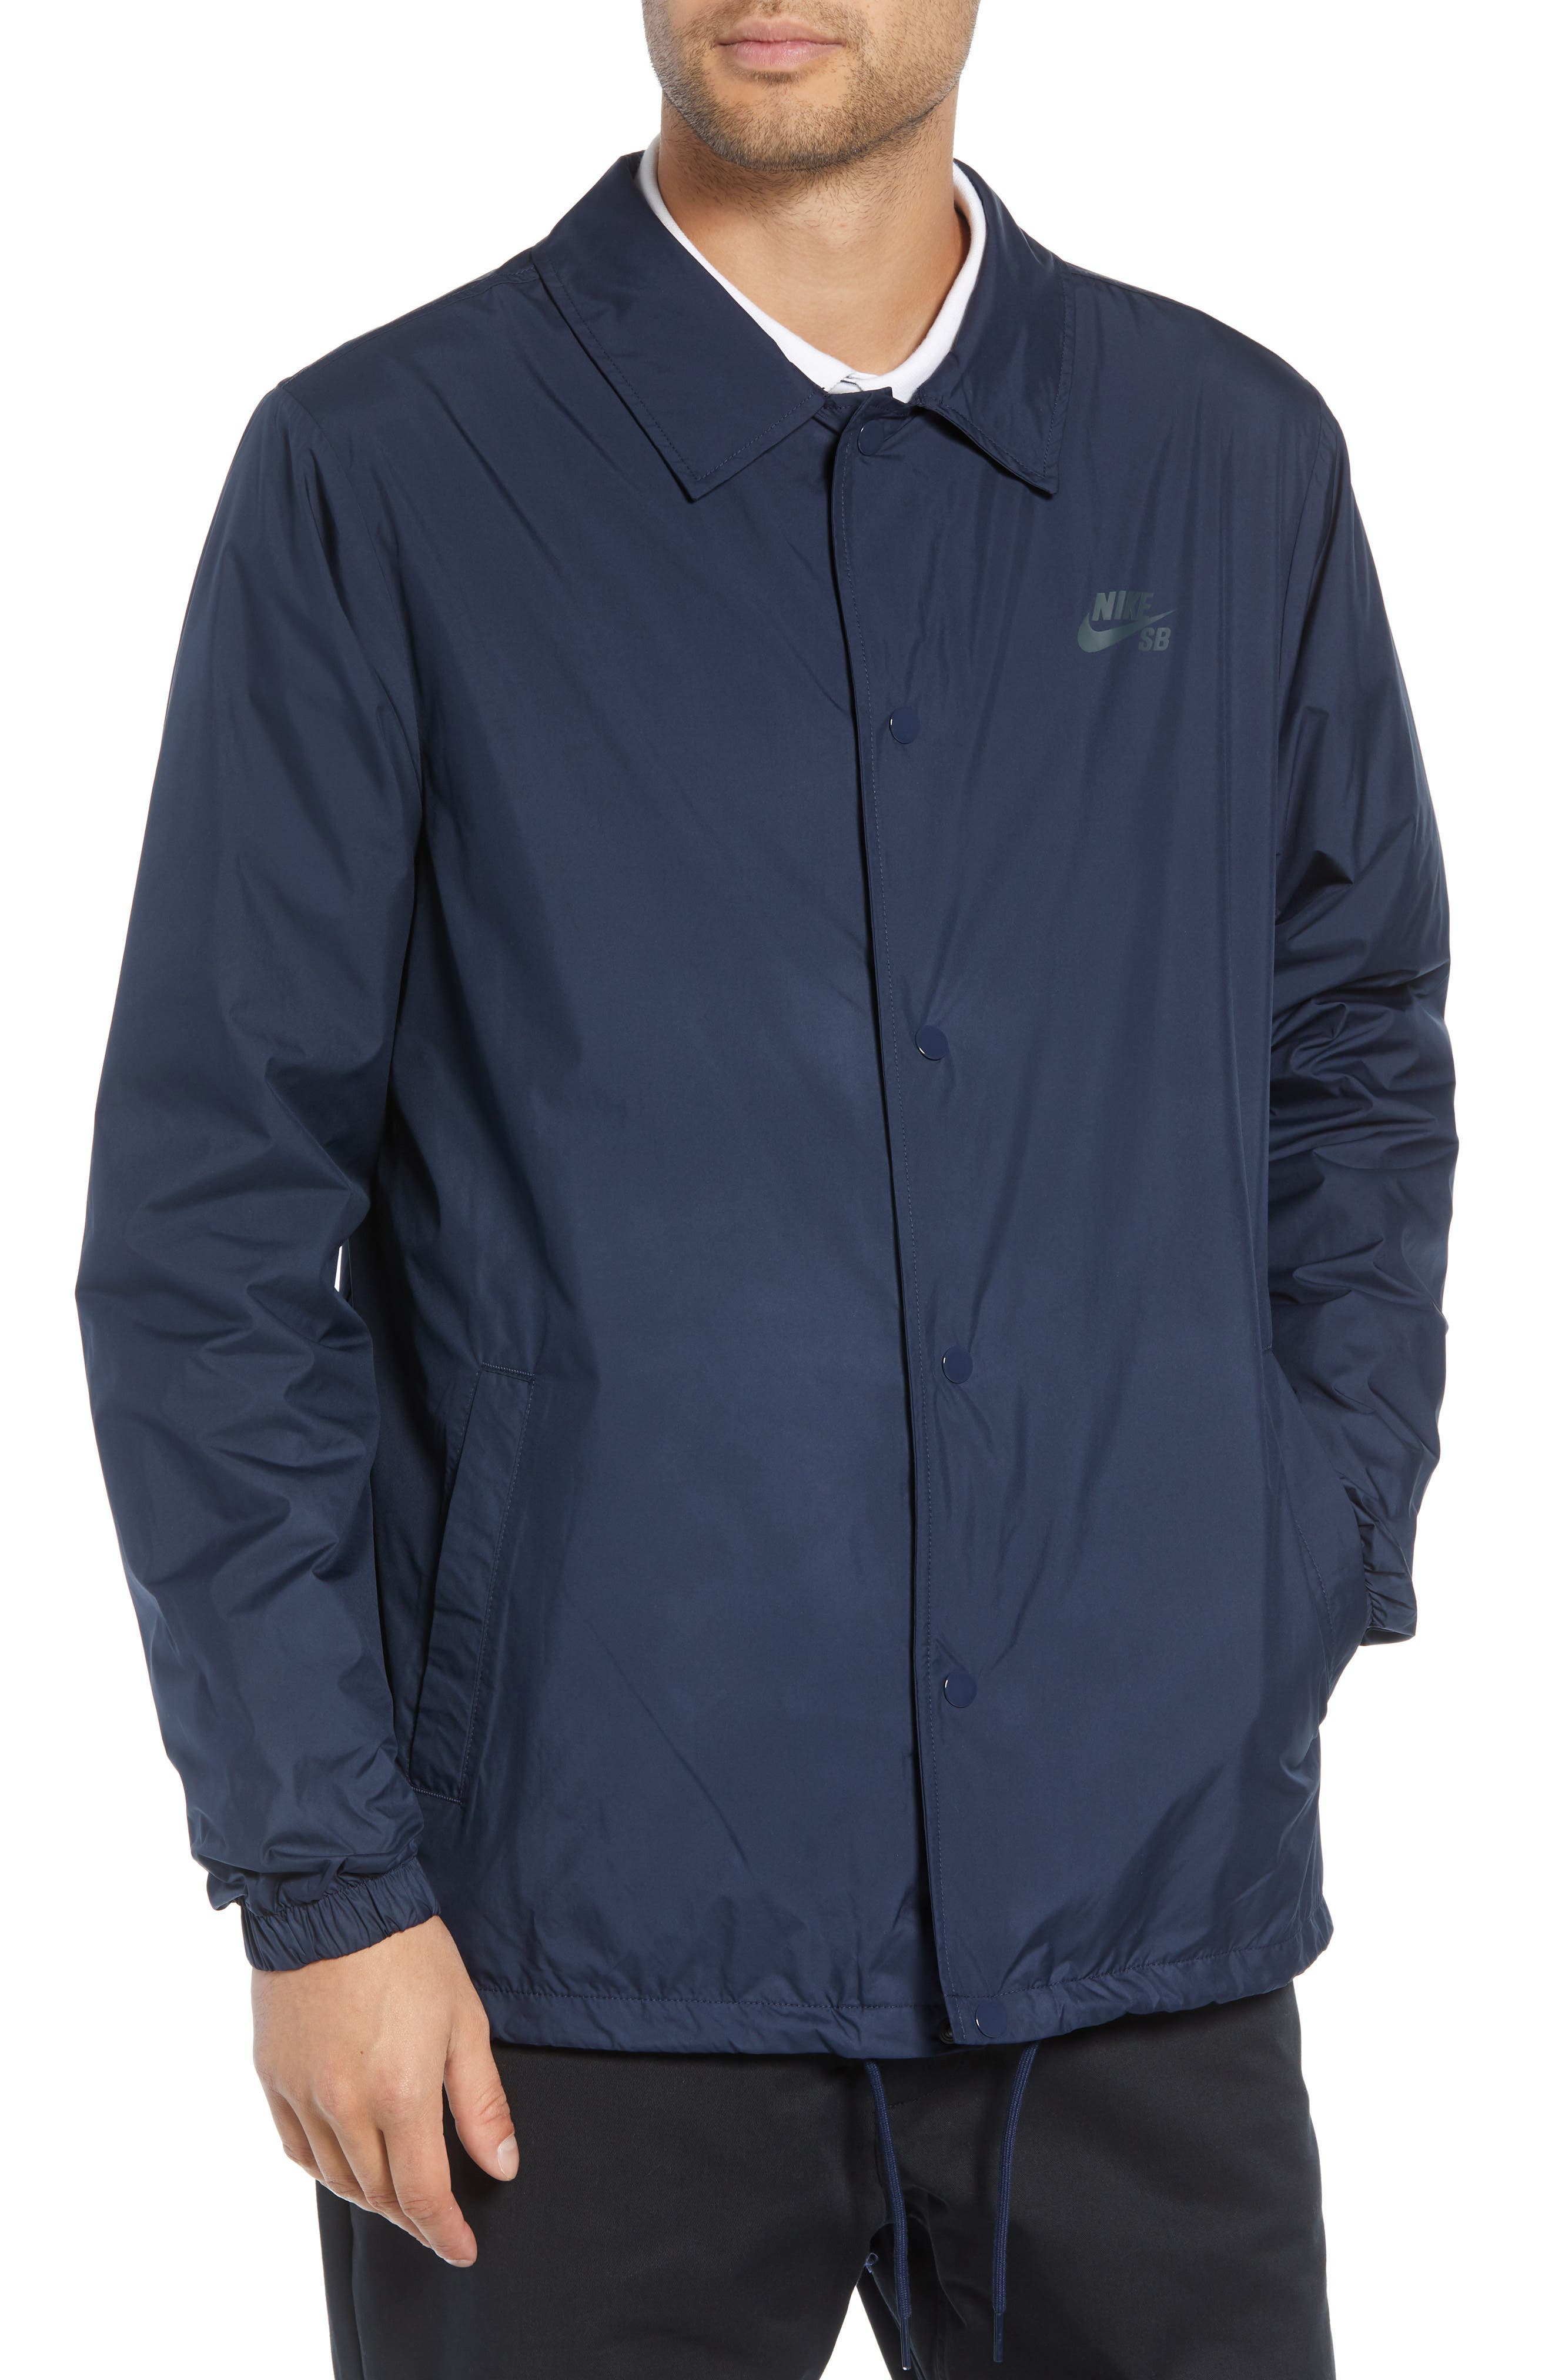 SB Shield Coach's Jacket,                             Alternate thumbnail 4, color,                             OBSIDIAN/ ANTHRACITE